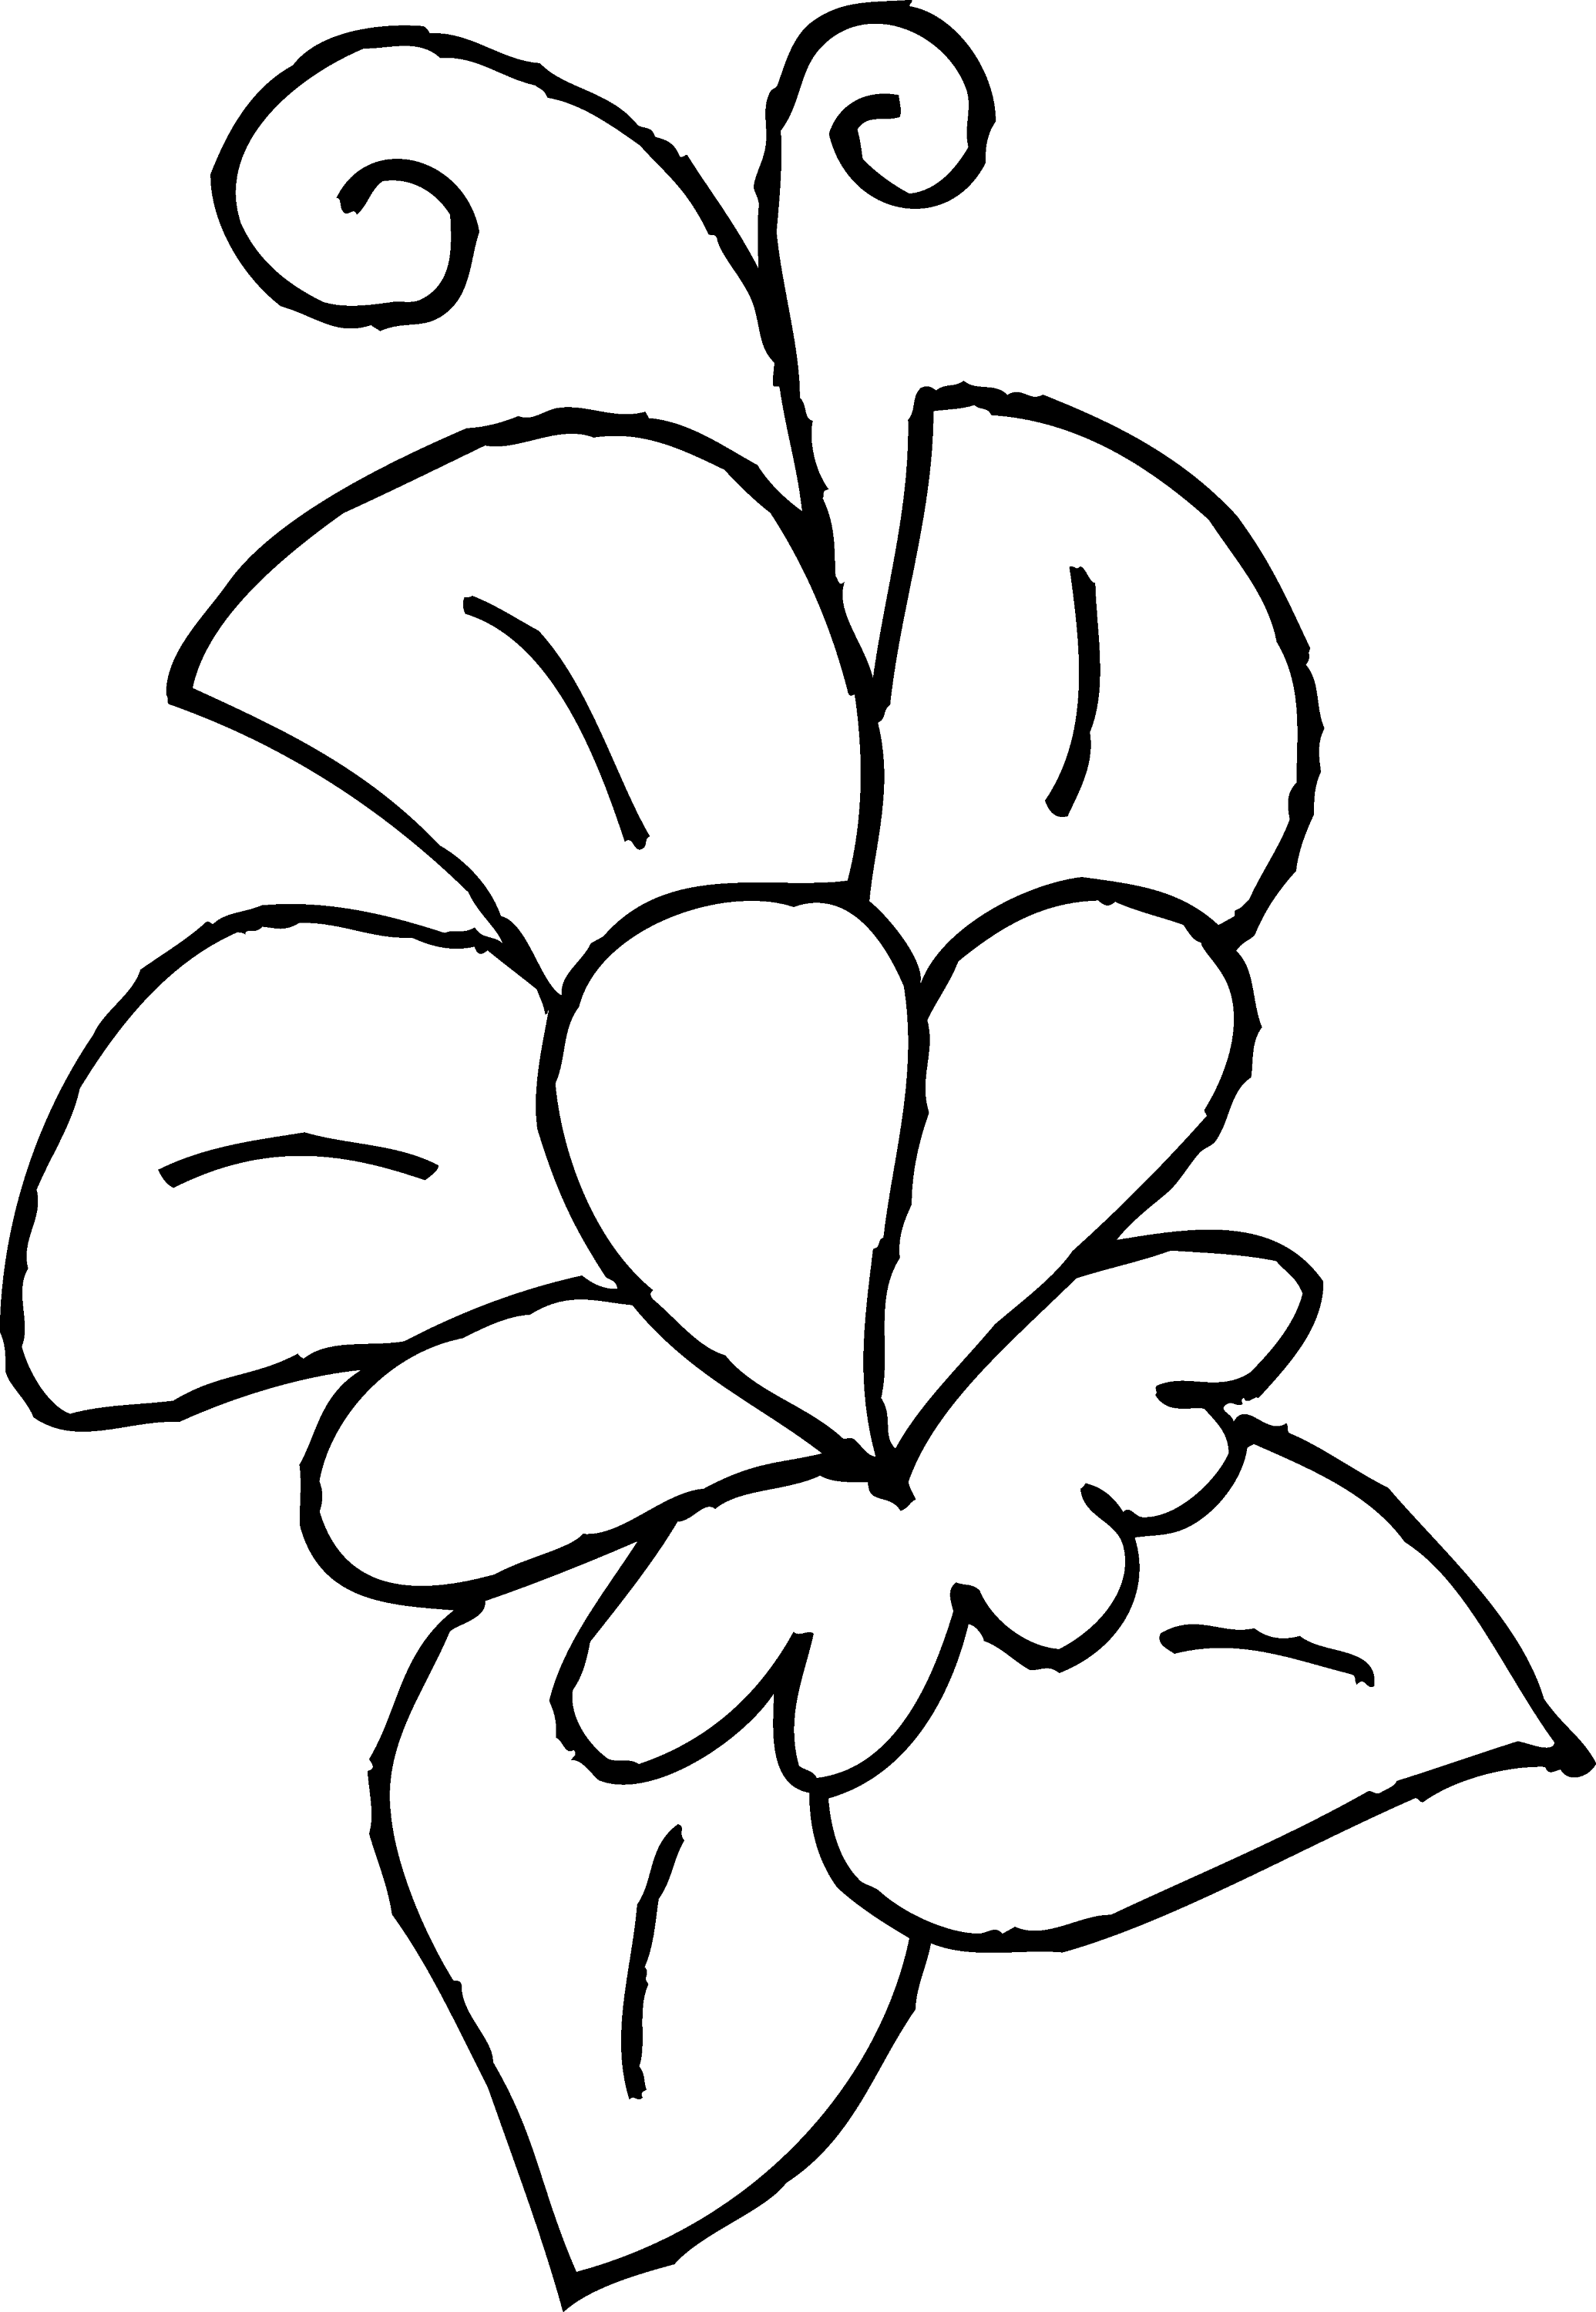 Cute Spring Flower Coloring Page 3